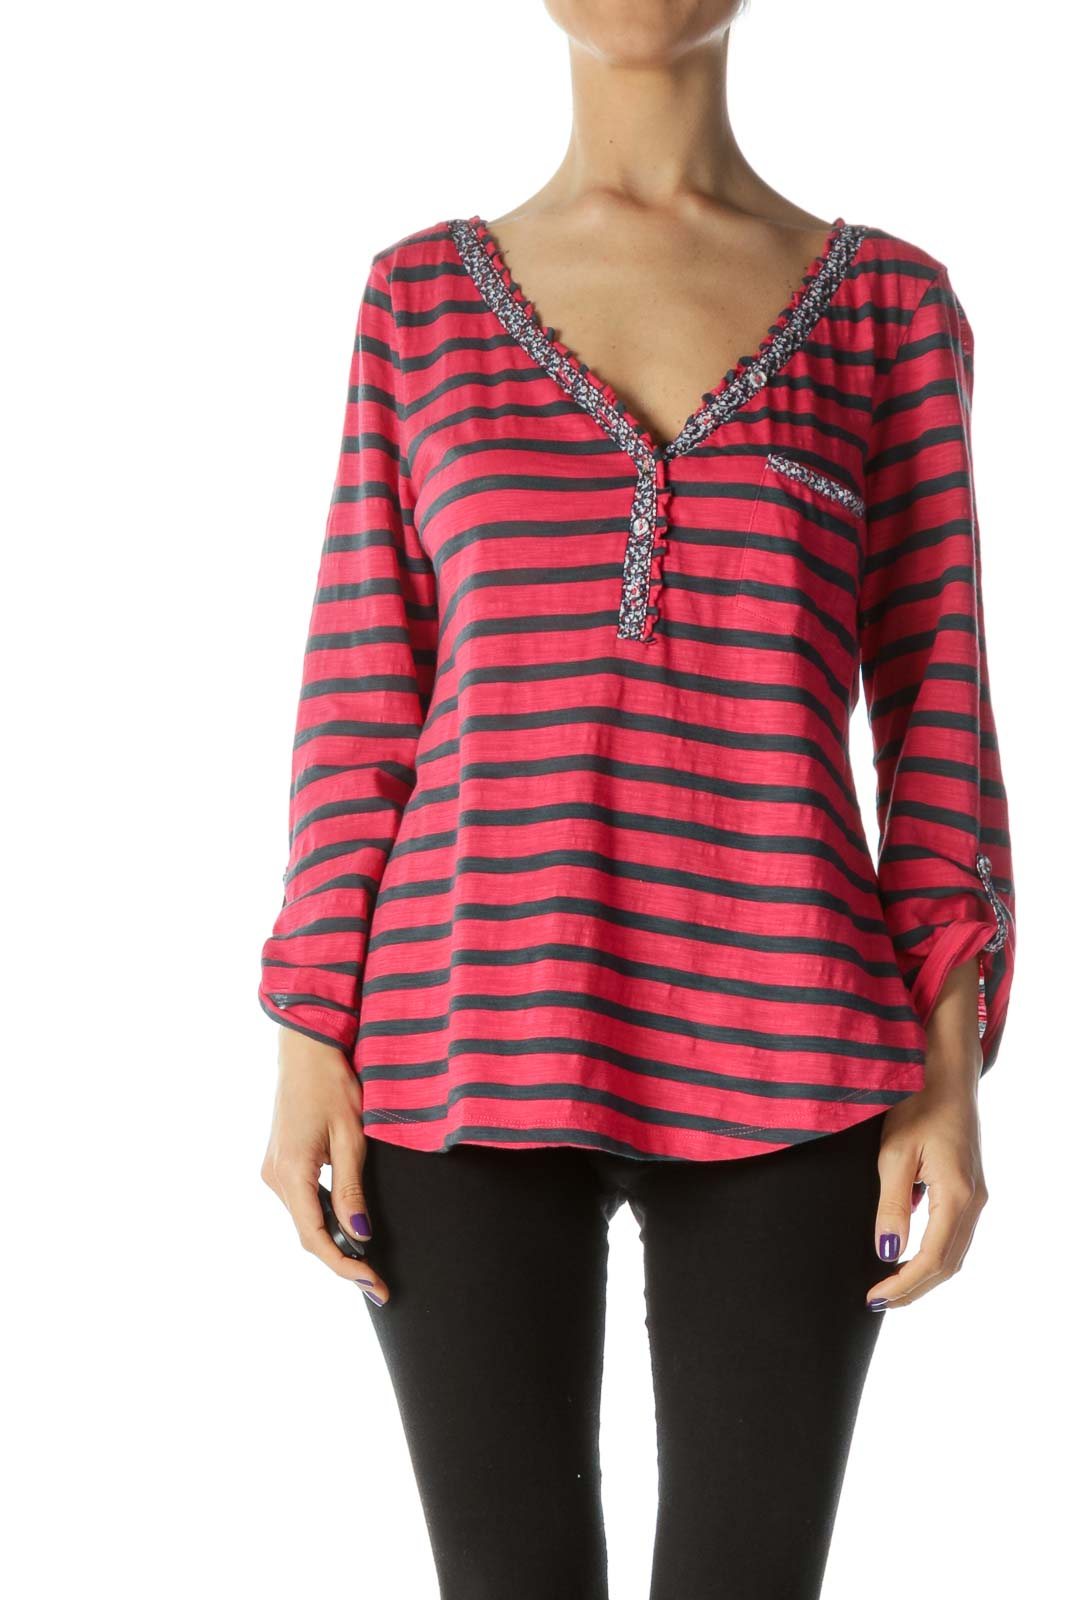 Strawberry-Red/Gray/Blue Floral-Print-Piping Striped Blouse